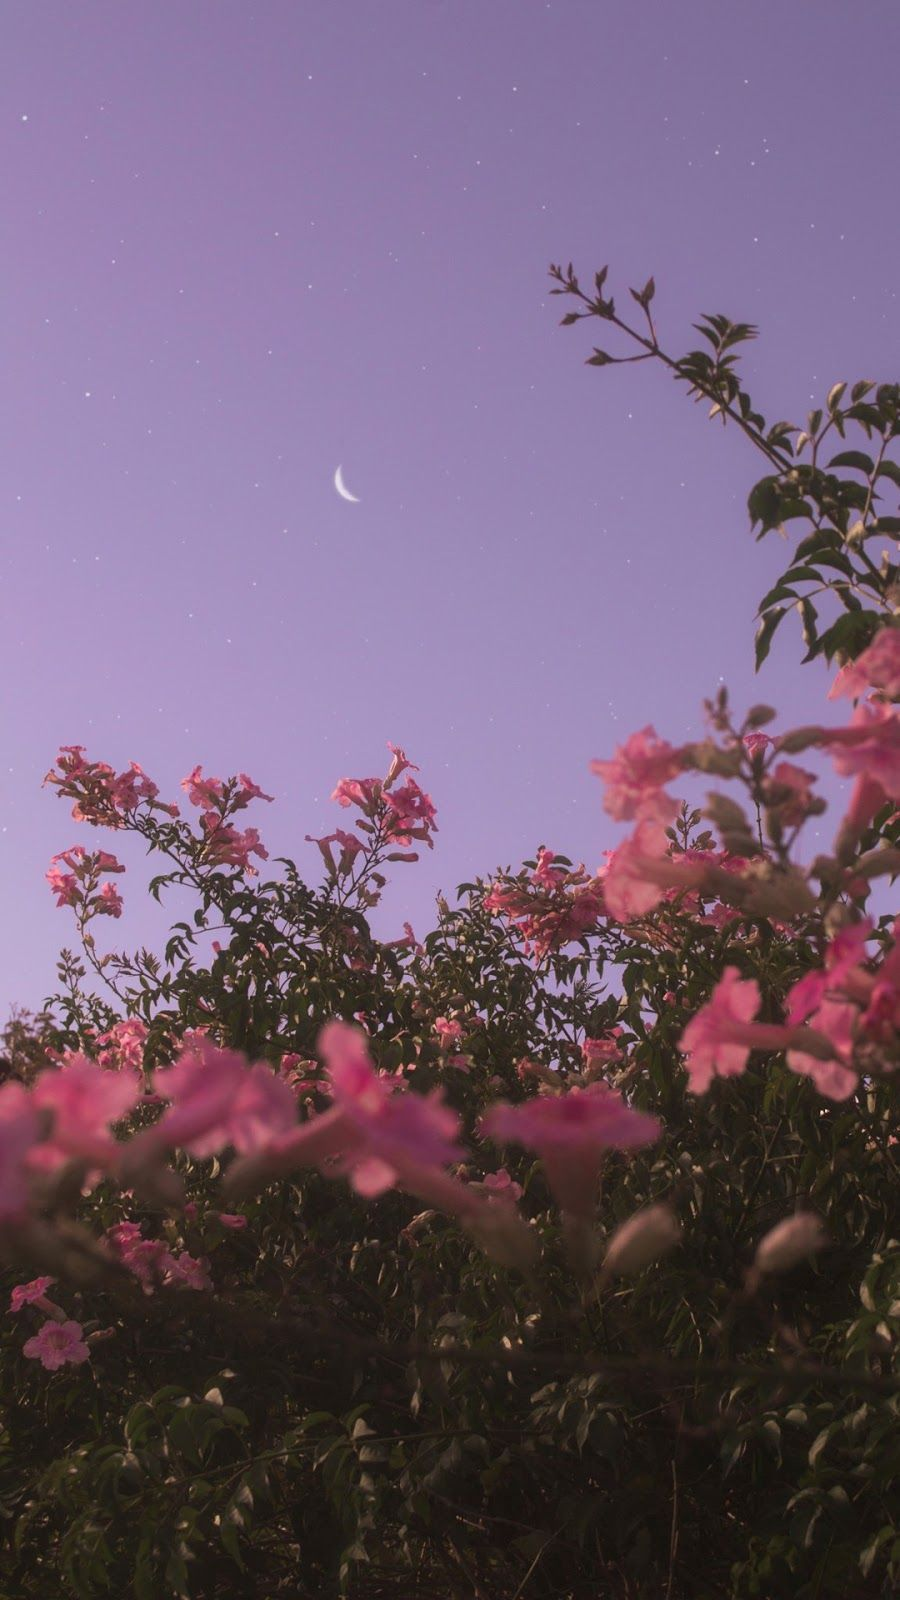 Flower under night sky wallpaper iphone android